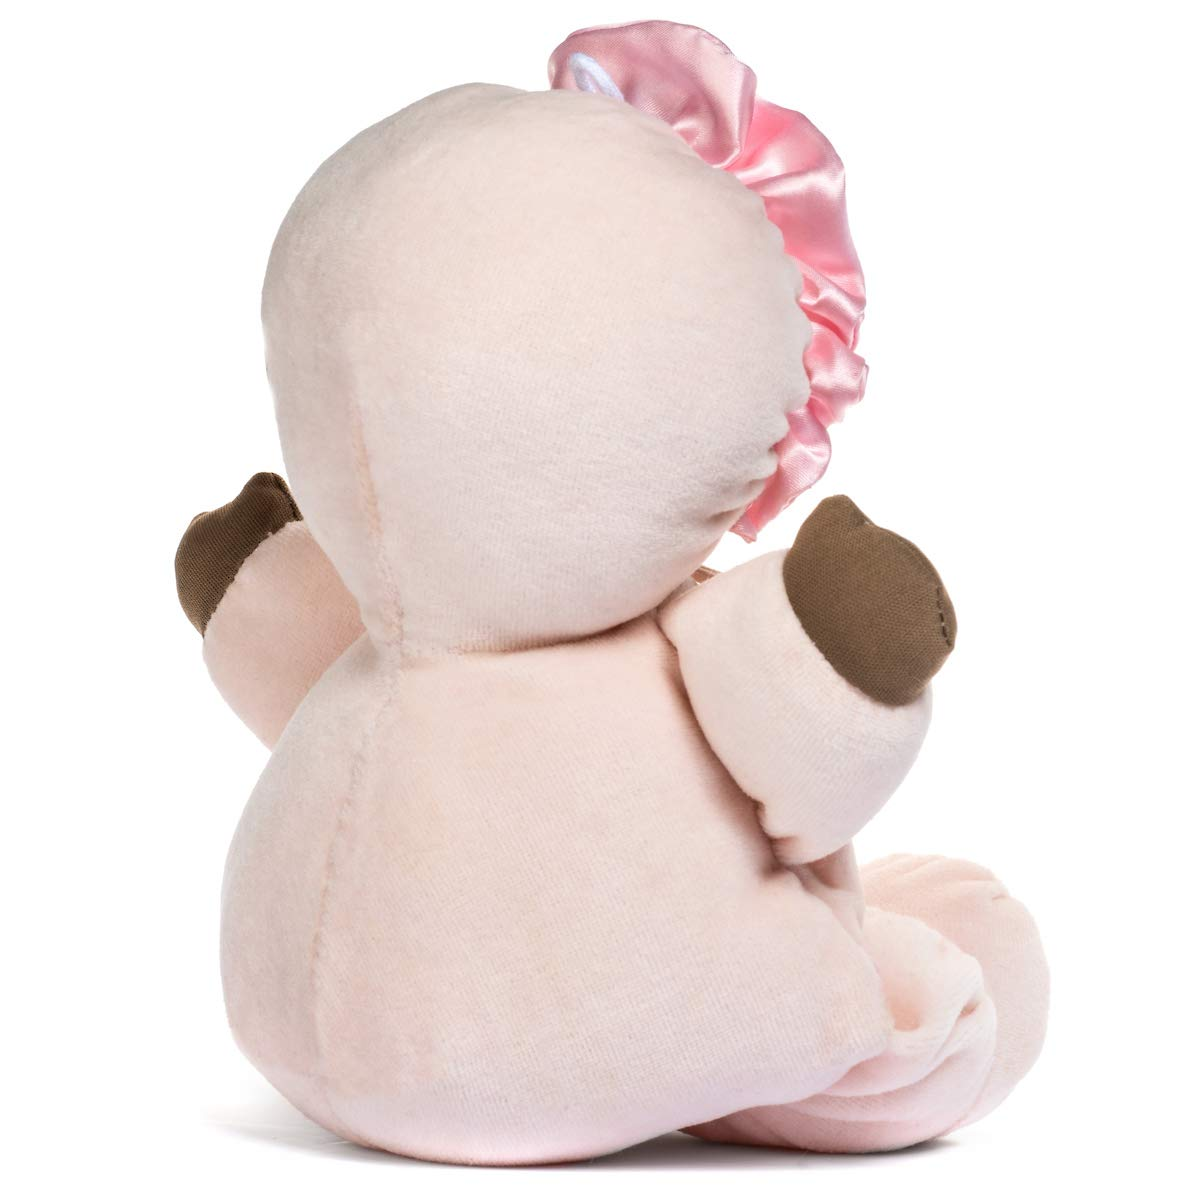 So Soft My First Baby Doll with Dark Complexion and Black Hair